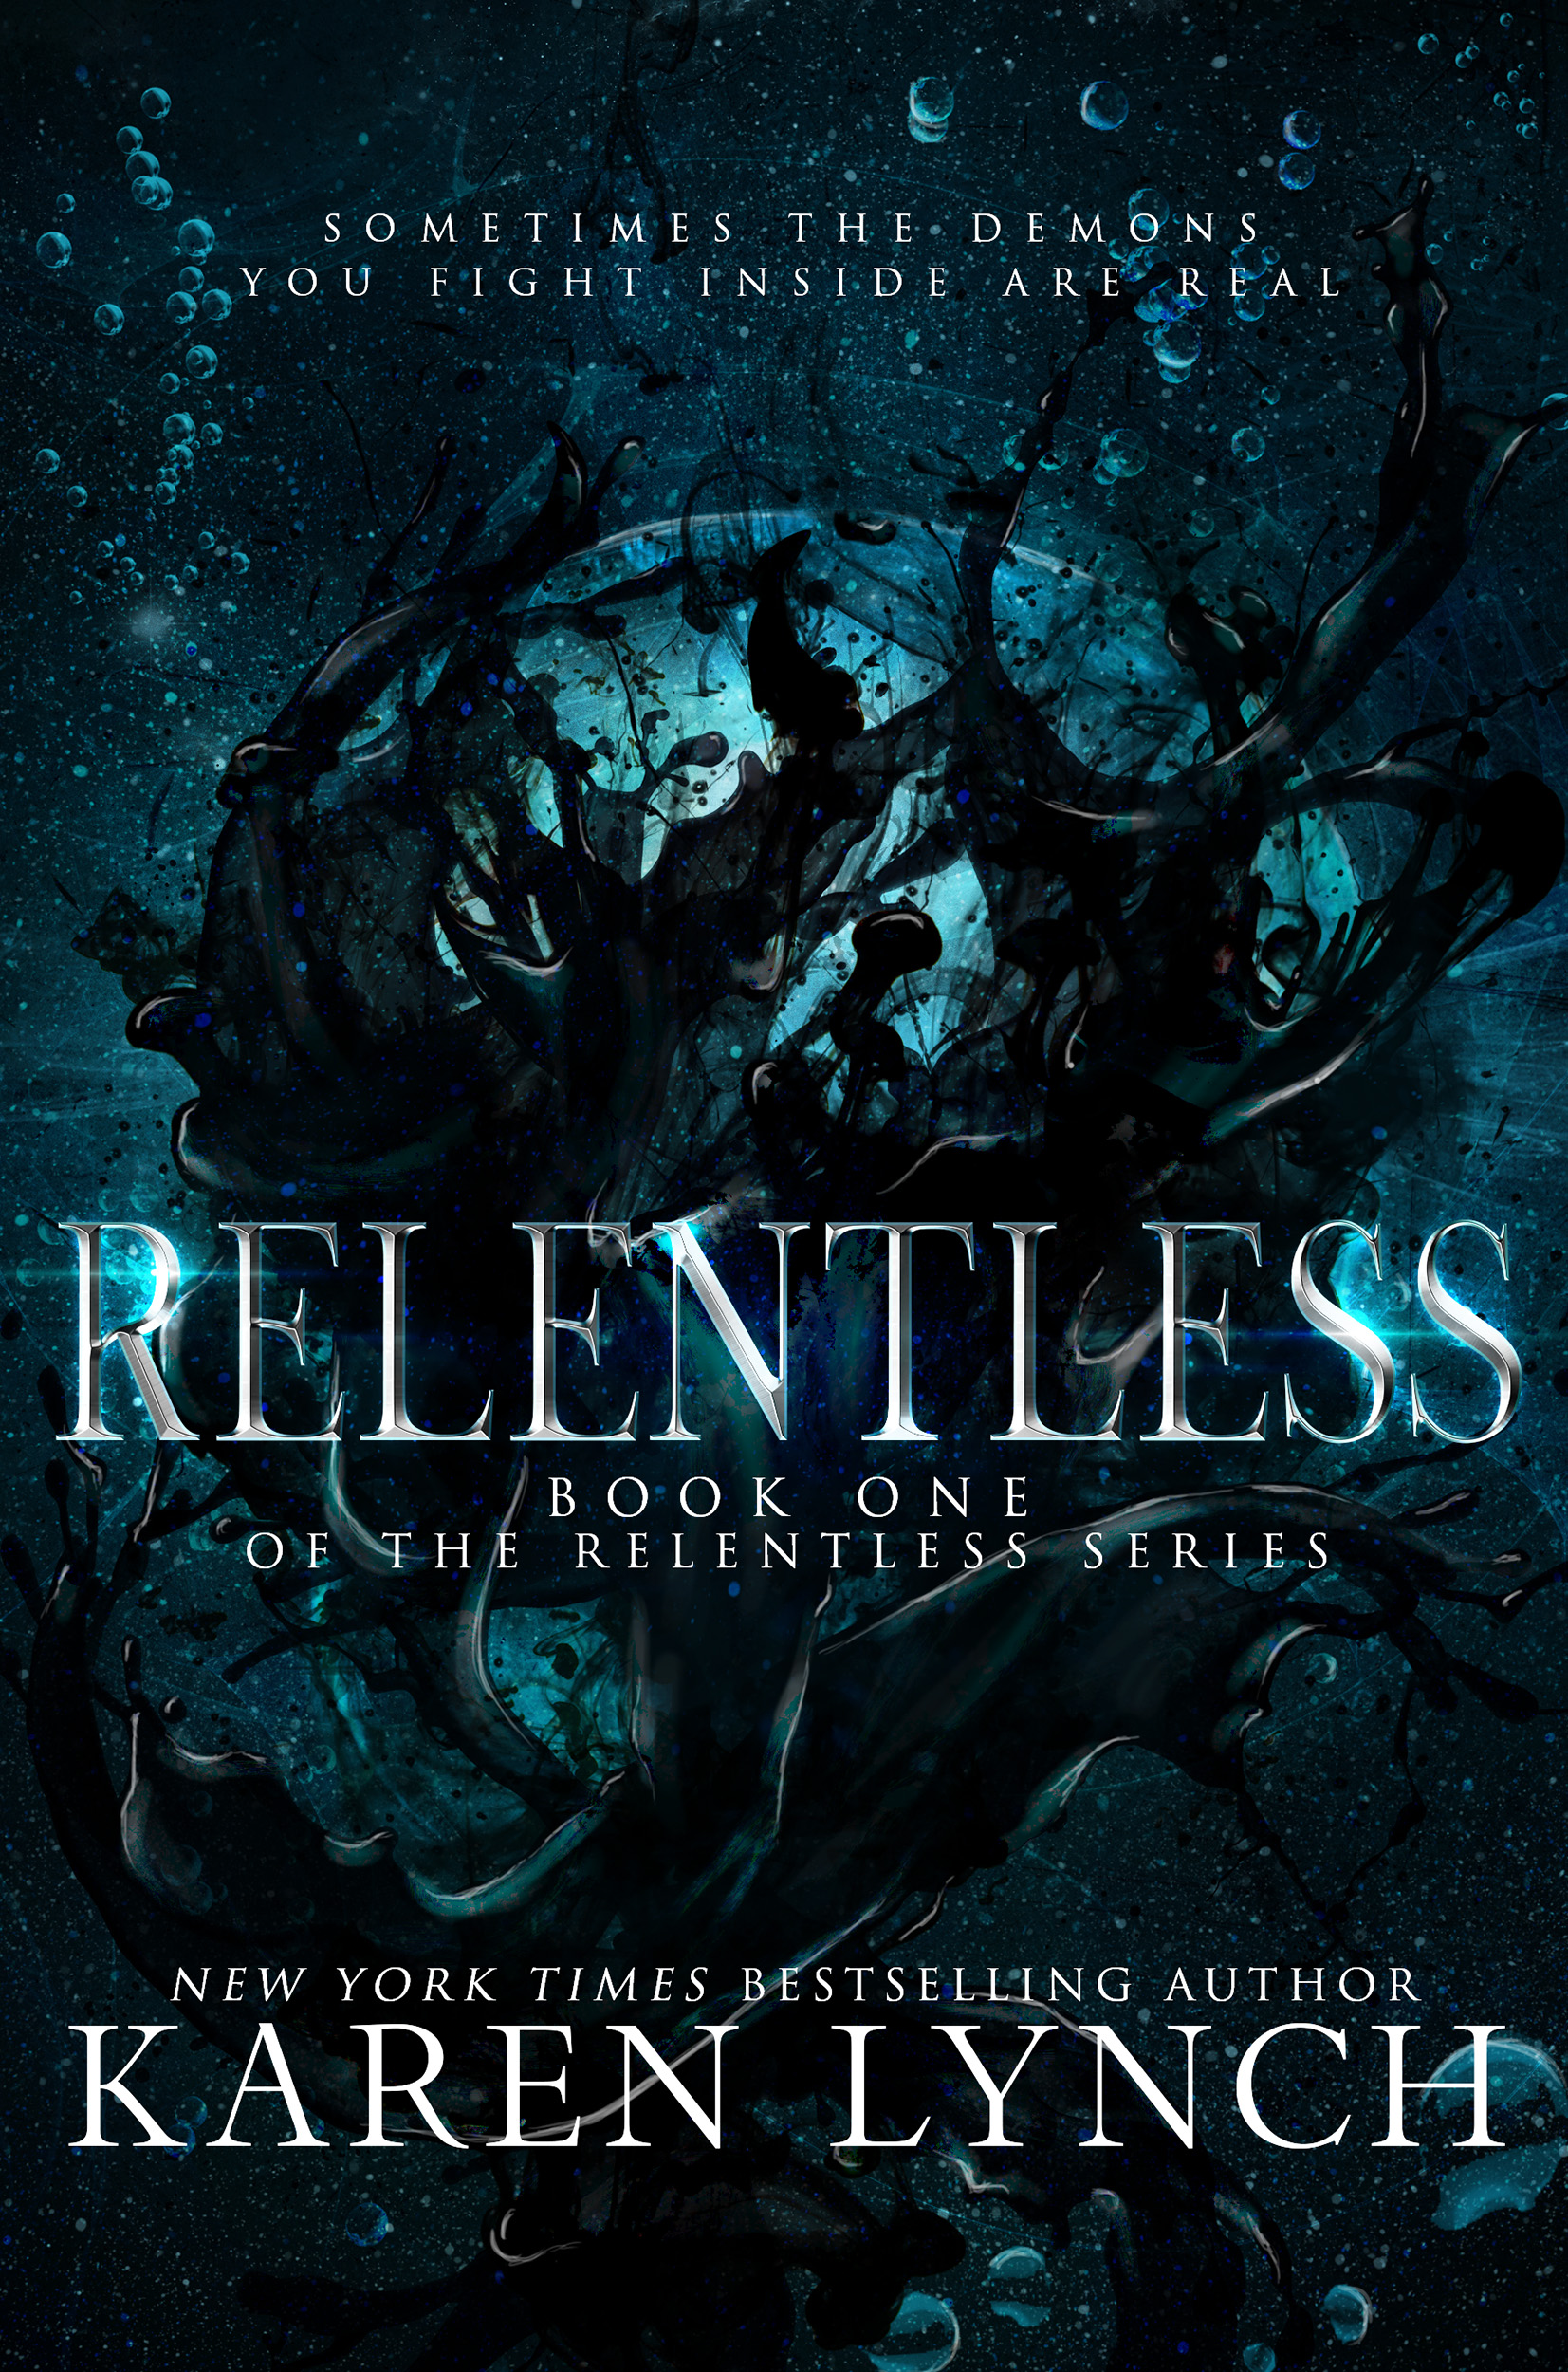 Relentless Book 1 (sst-x)